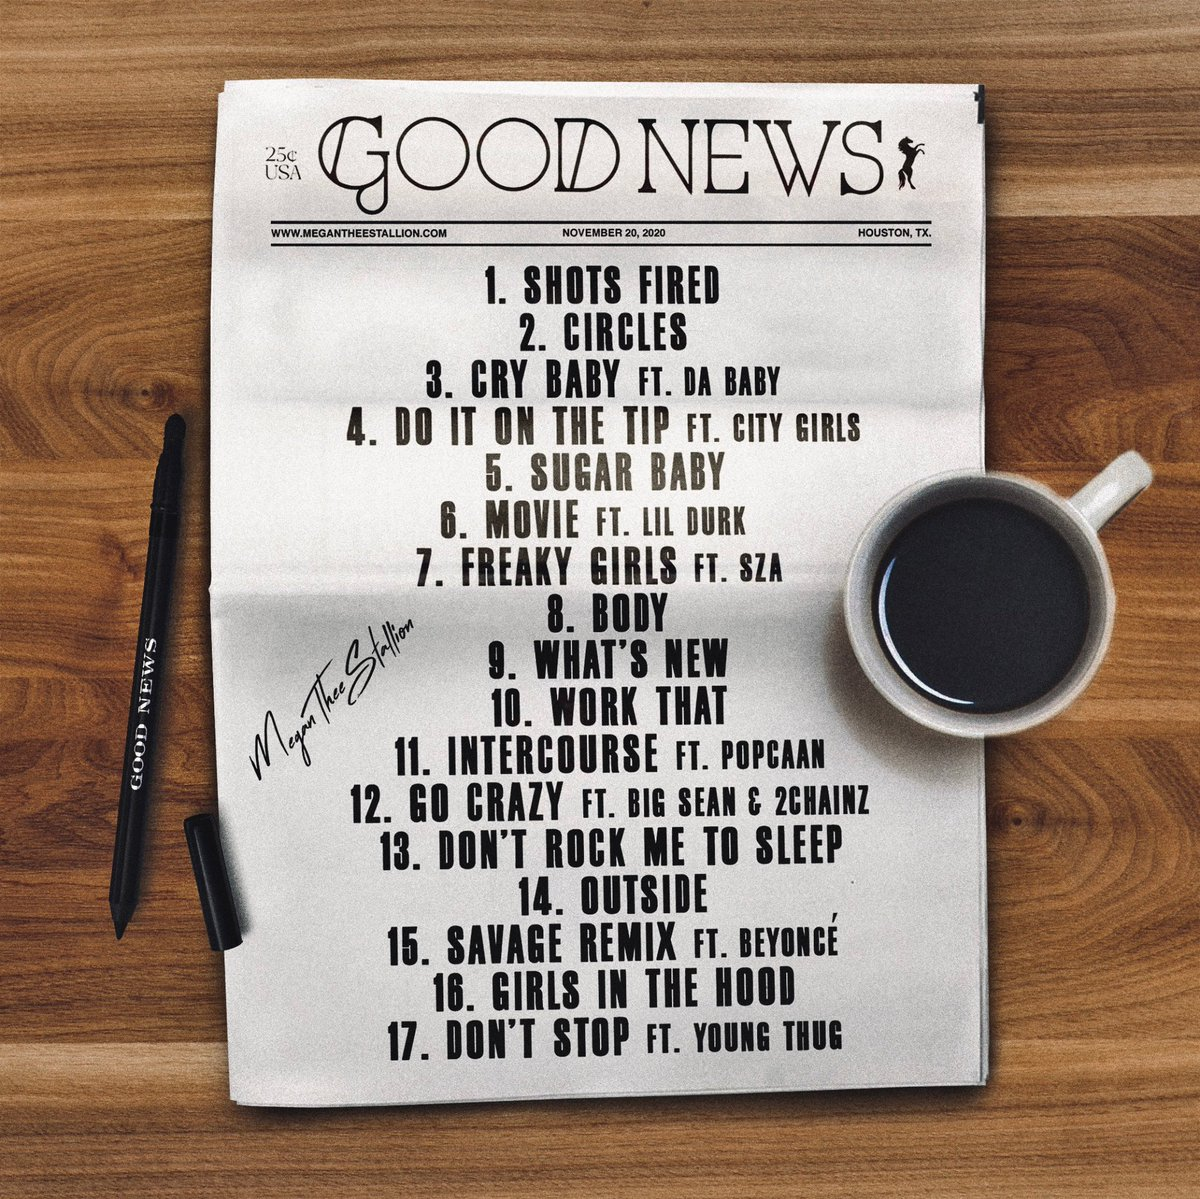 #GOODNEWS. MEGAN THEE STALLION. FRIDAY.  f/ @DaBabyDaBaby, @citygirls, @lildurk, @sza, @PopcaanMusic, @BigSean, @2chainz, @Beyonce, @youngthug